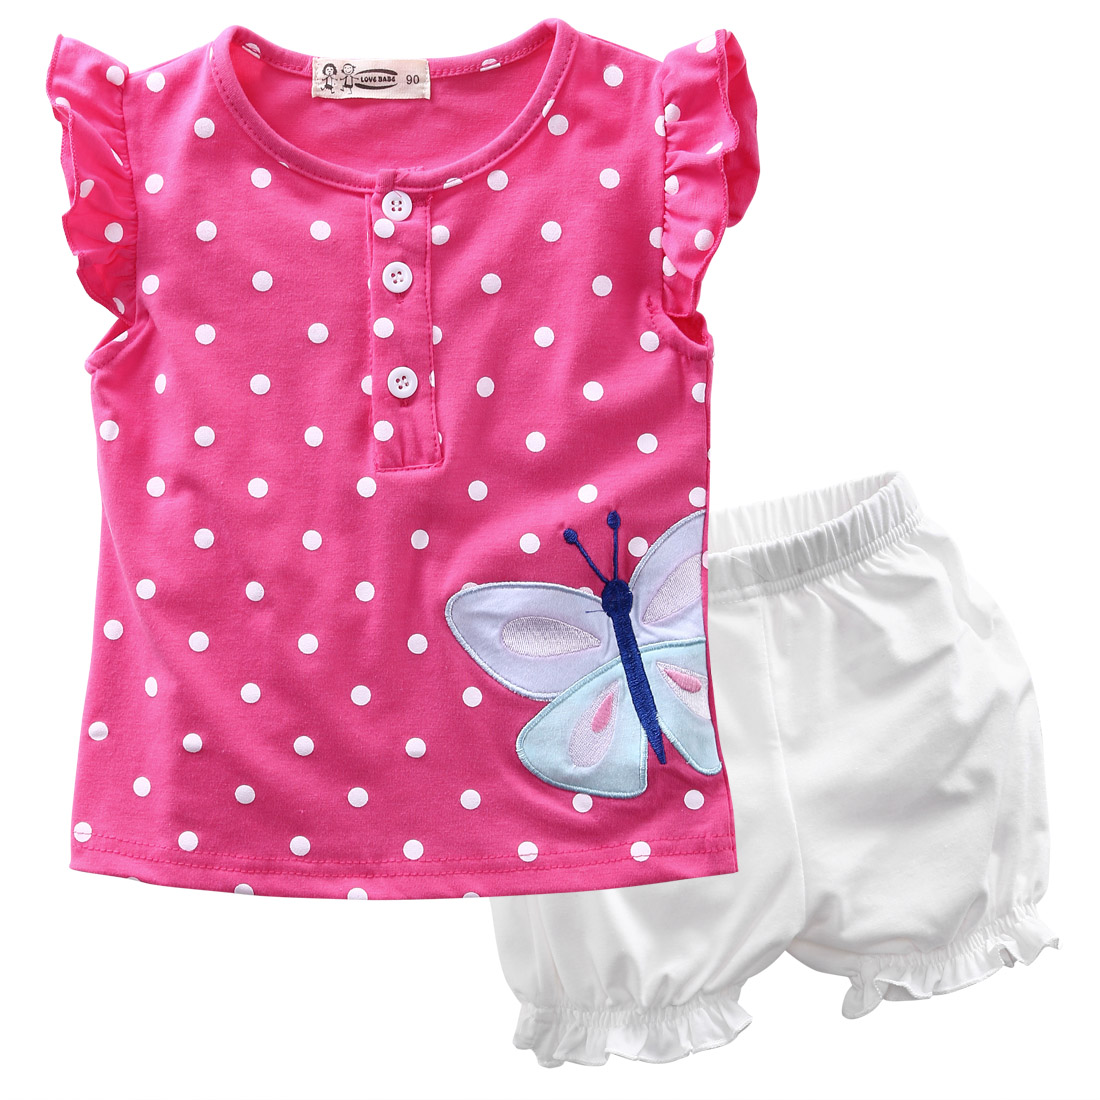 Kids Children Newborn Baby Girls Clothes Tops Shorts Summer  Sets Butterfly Flower Child Kid Infant Girl Cotton Clothing Garment vtech splashing songs ducky bath toy newborn kid child children infant baby